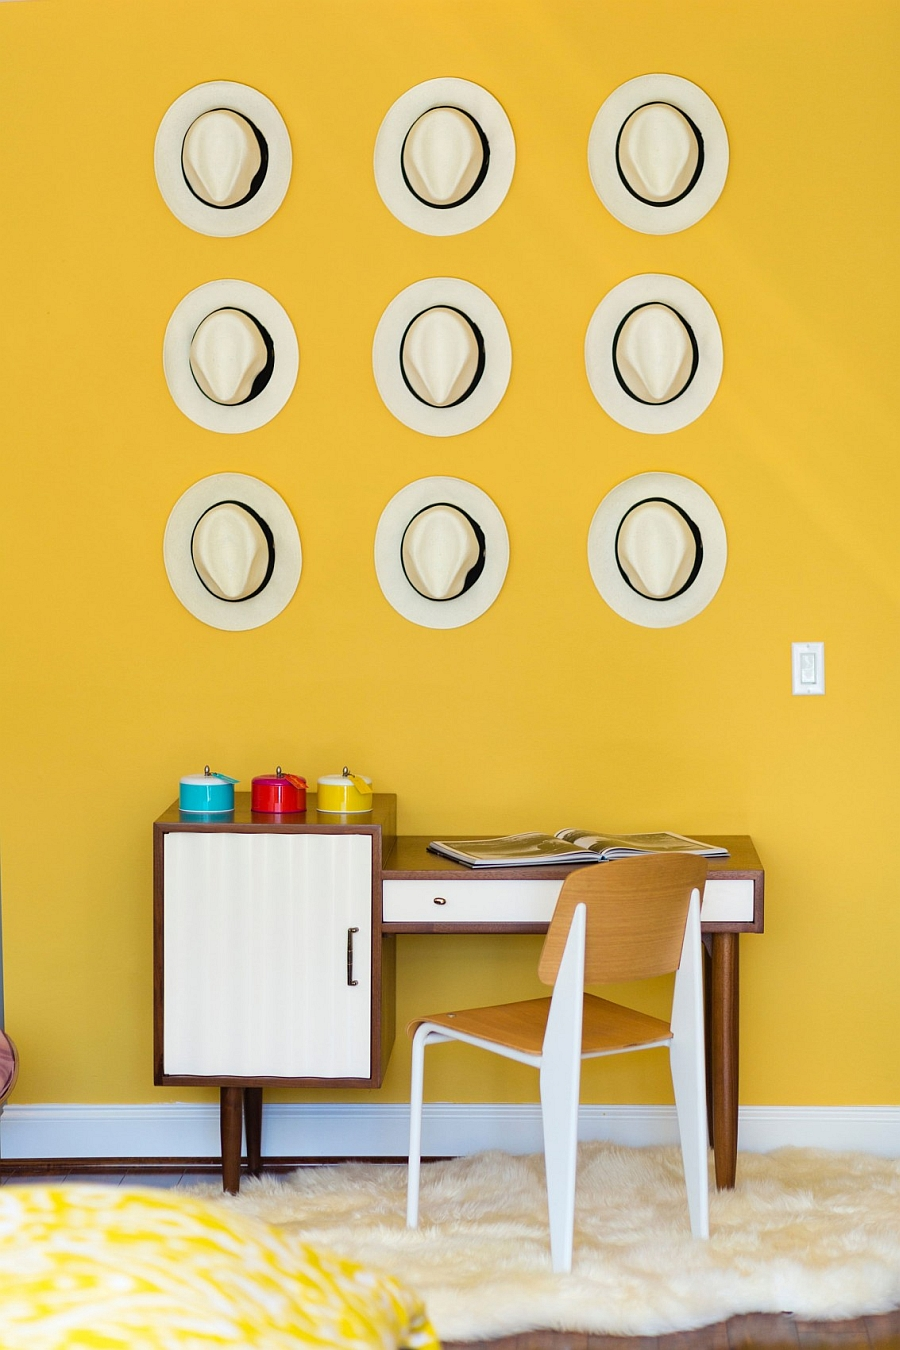 Home office with a collection of decorative hats on the wall